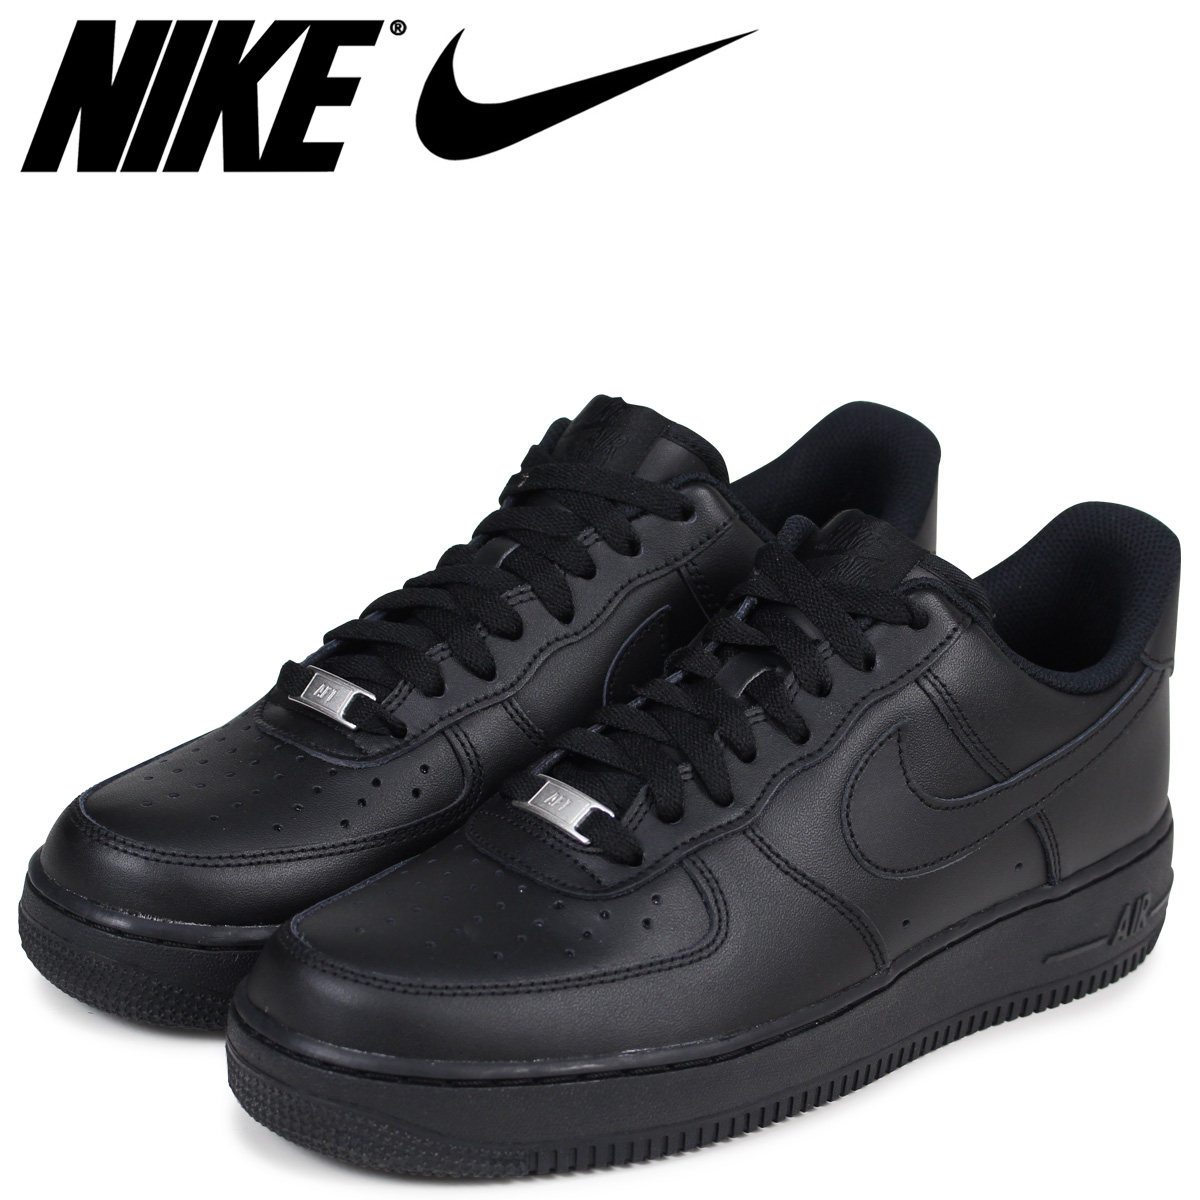 eec22068dc8 Sugar Online Shop  NIKE Nike air force 1 07 sneakers men AIR FORCE 1 ...